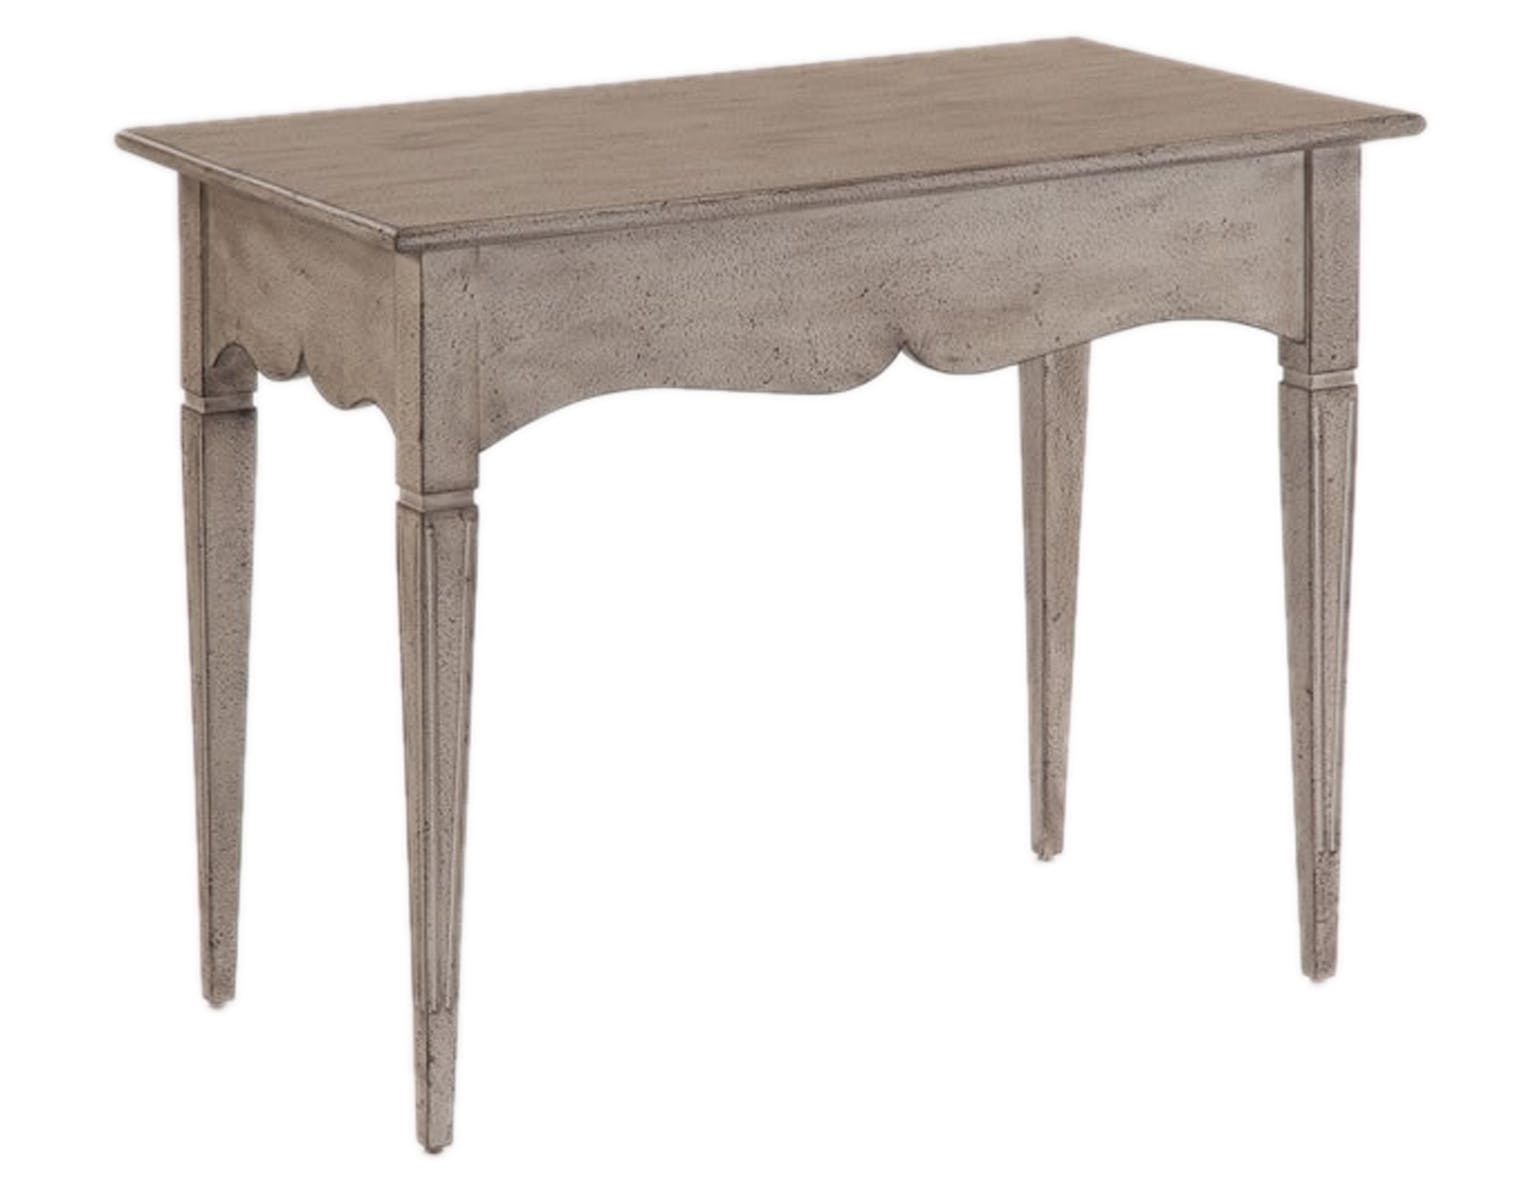 Antique reproduction Swedish table from Swede Collection furniture company - found on Hello Lovely Studio